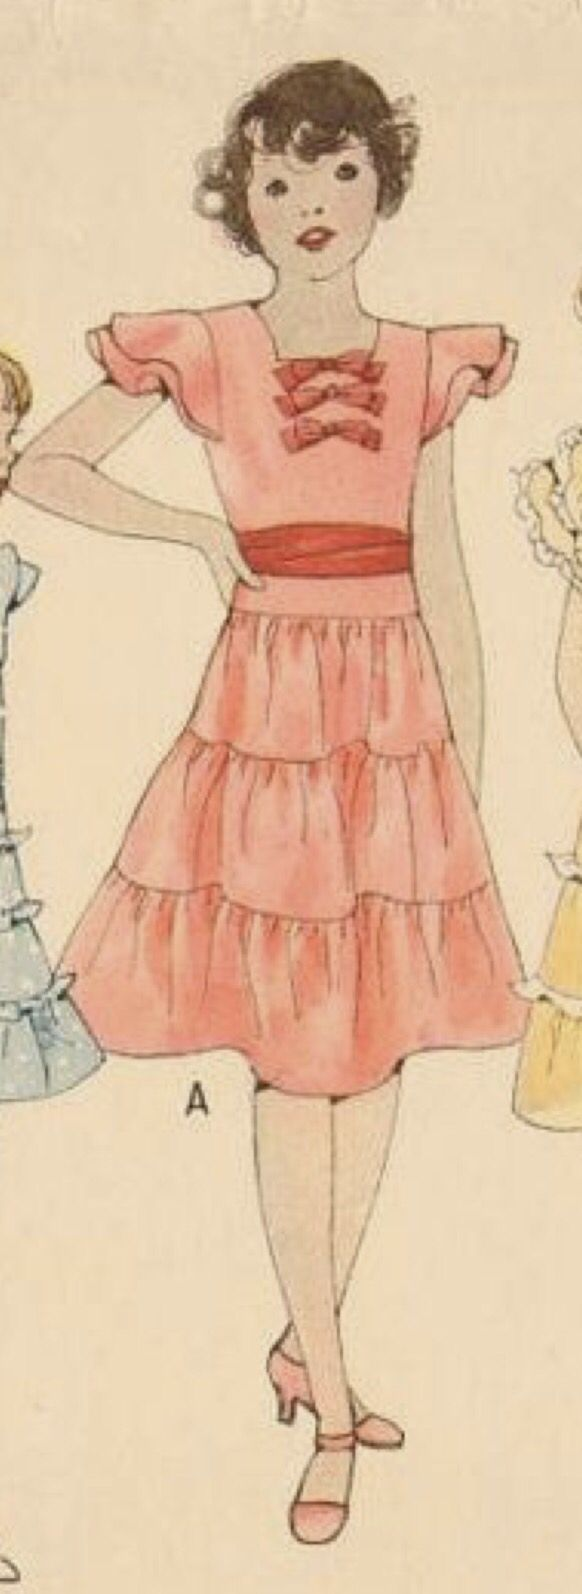 101 best 2ntage 1930s girls patterns images on pinterest child clothes kids fashion historical clothing girl outfits 1930s sewing patterns kid jeuxipadfo Choice Image